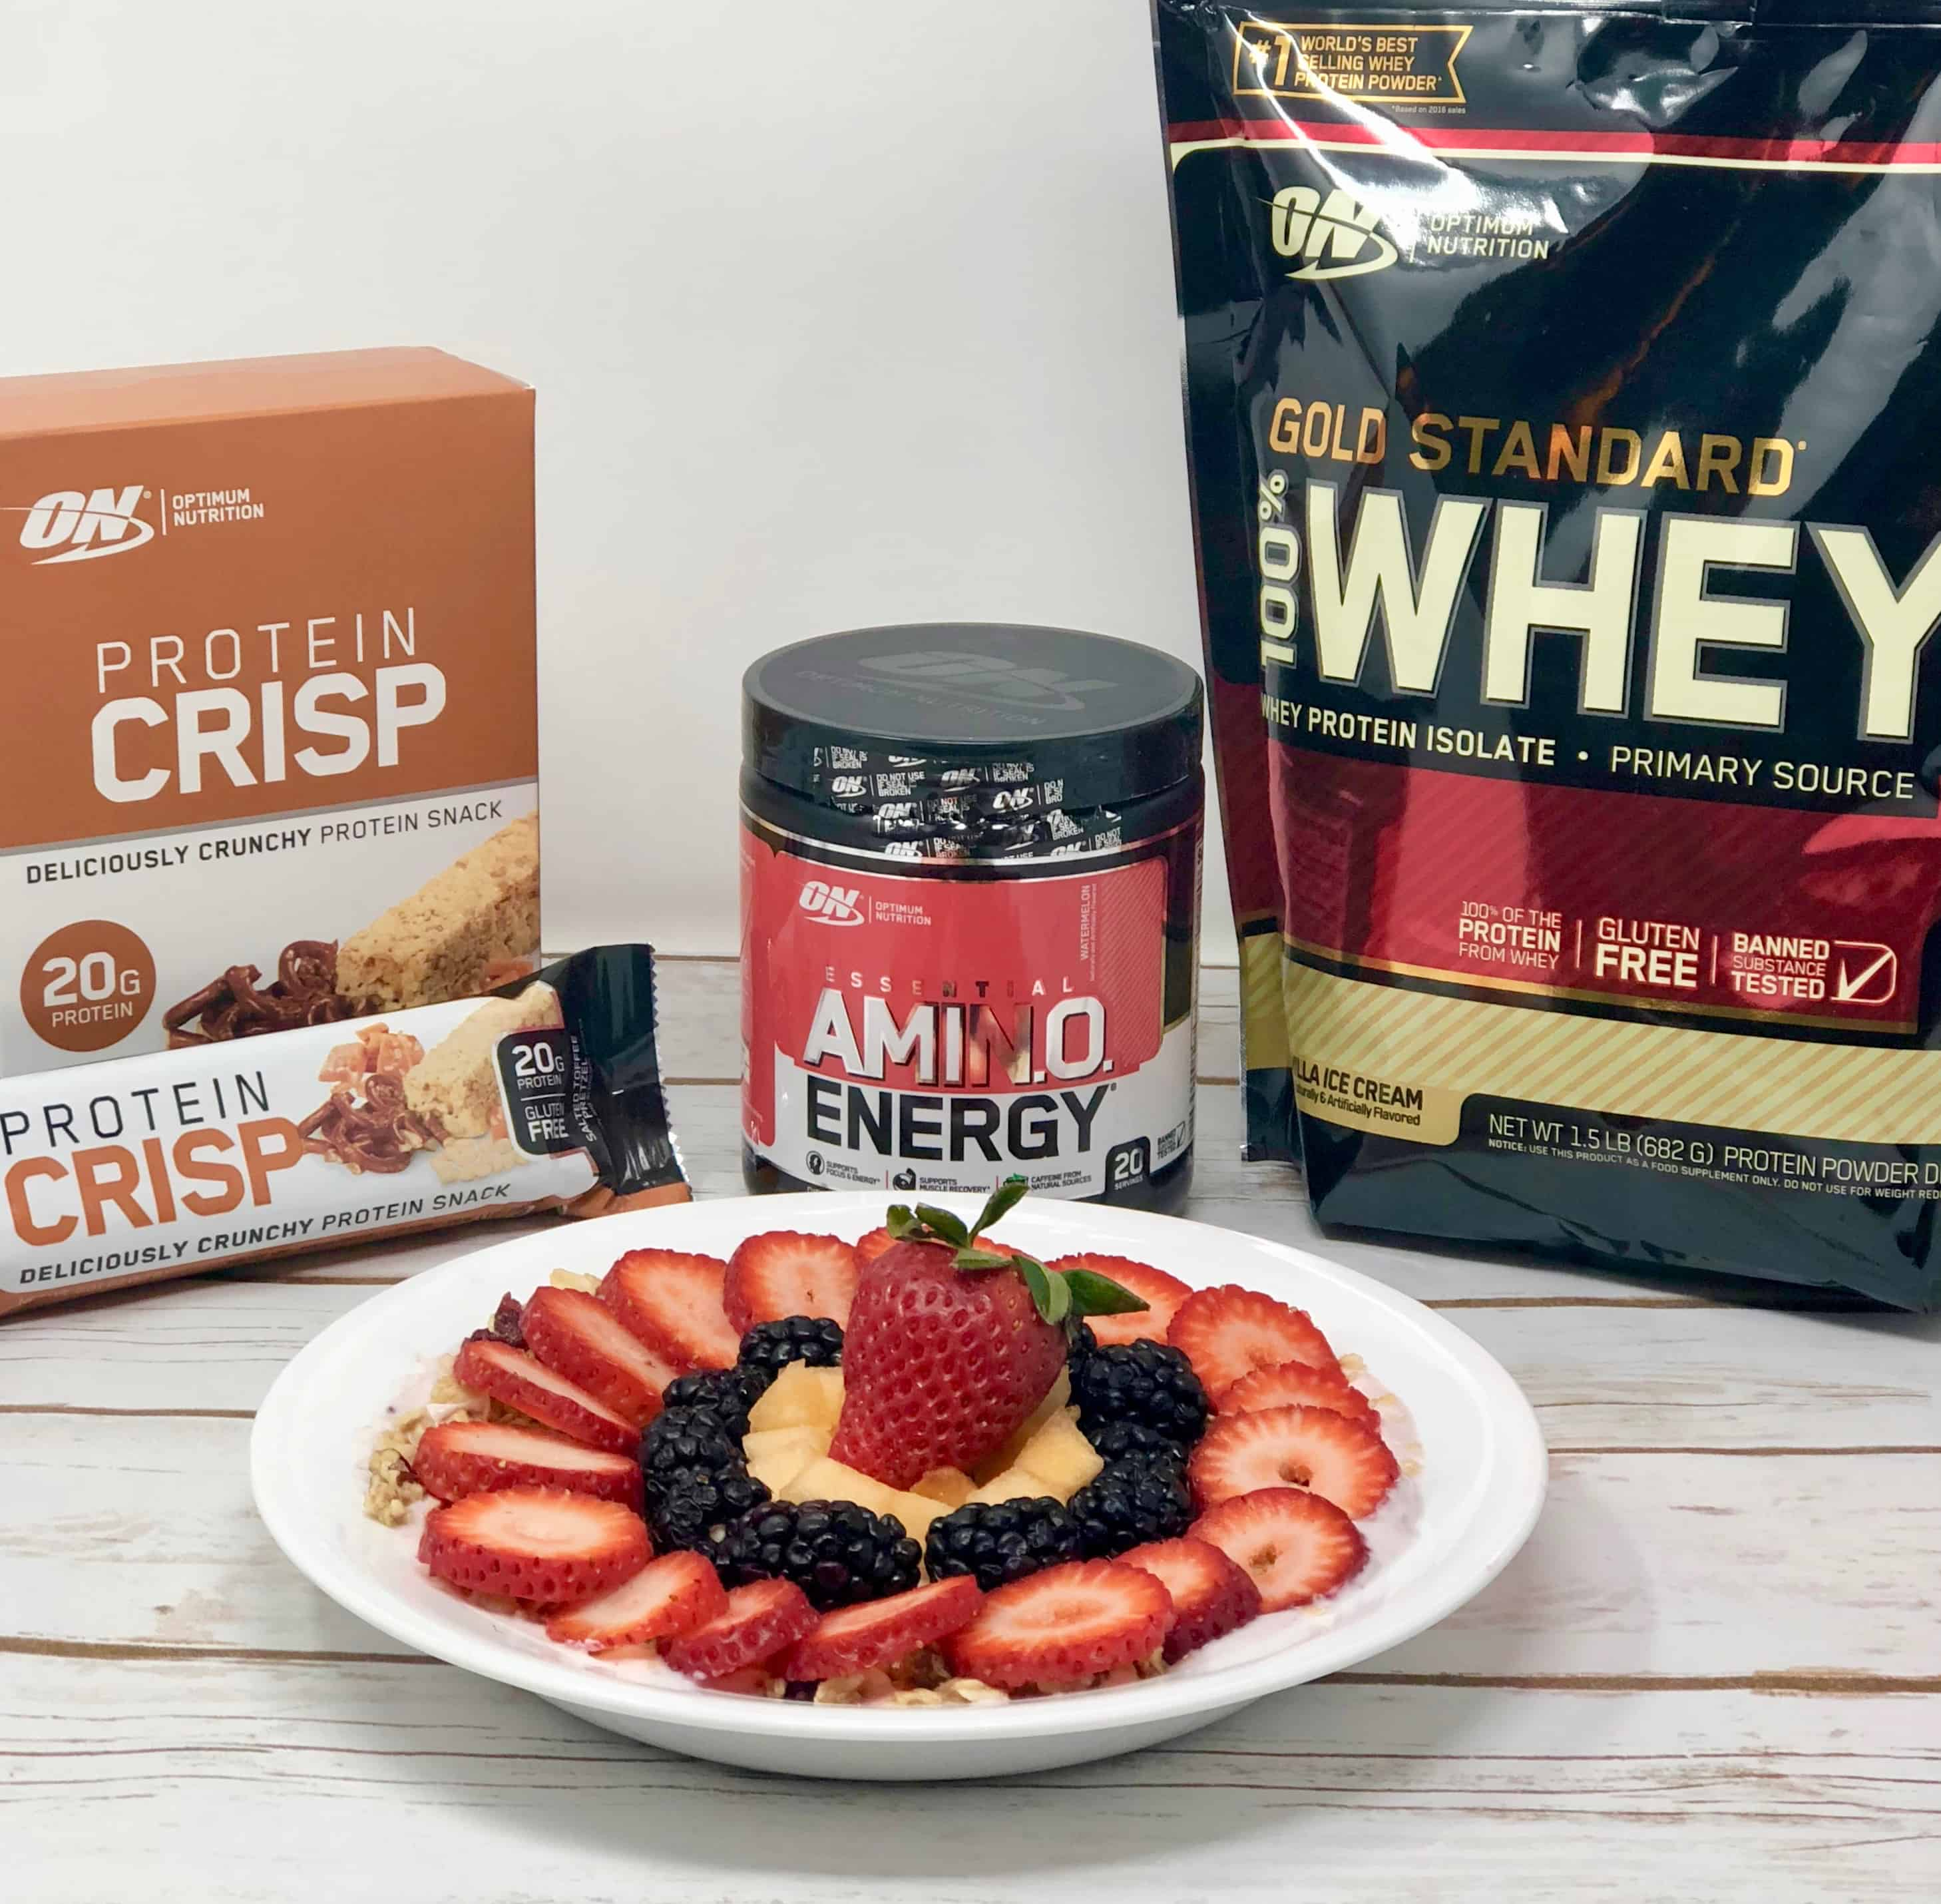 Fruit Smoothie Bowl and Optimum Nutrition products